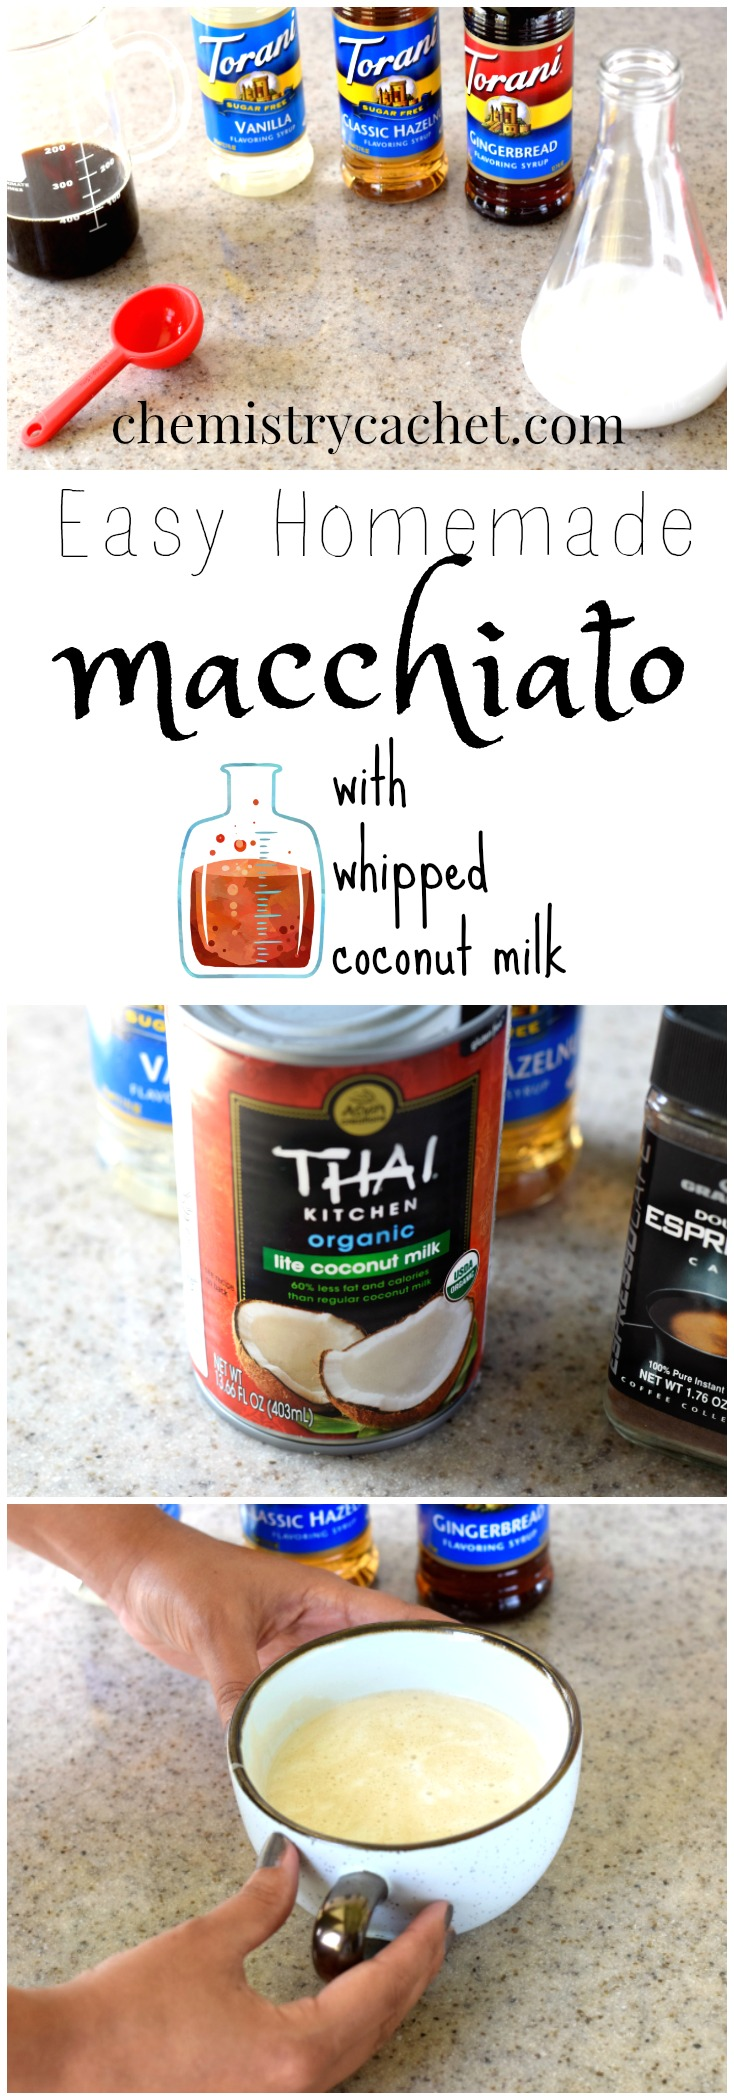 Easy Homemade Macchiato with delicious, easy whipped coconut milk. Different flavor options too! This dairy-free macchiato is just like at the coffee shop. See video and recipe on chemistrycachet.com